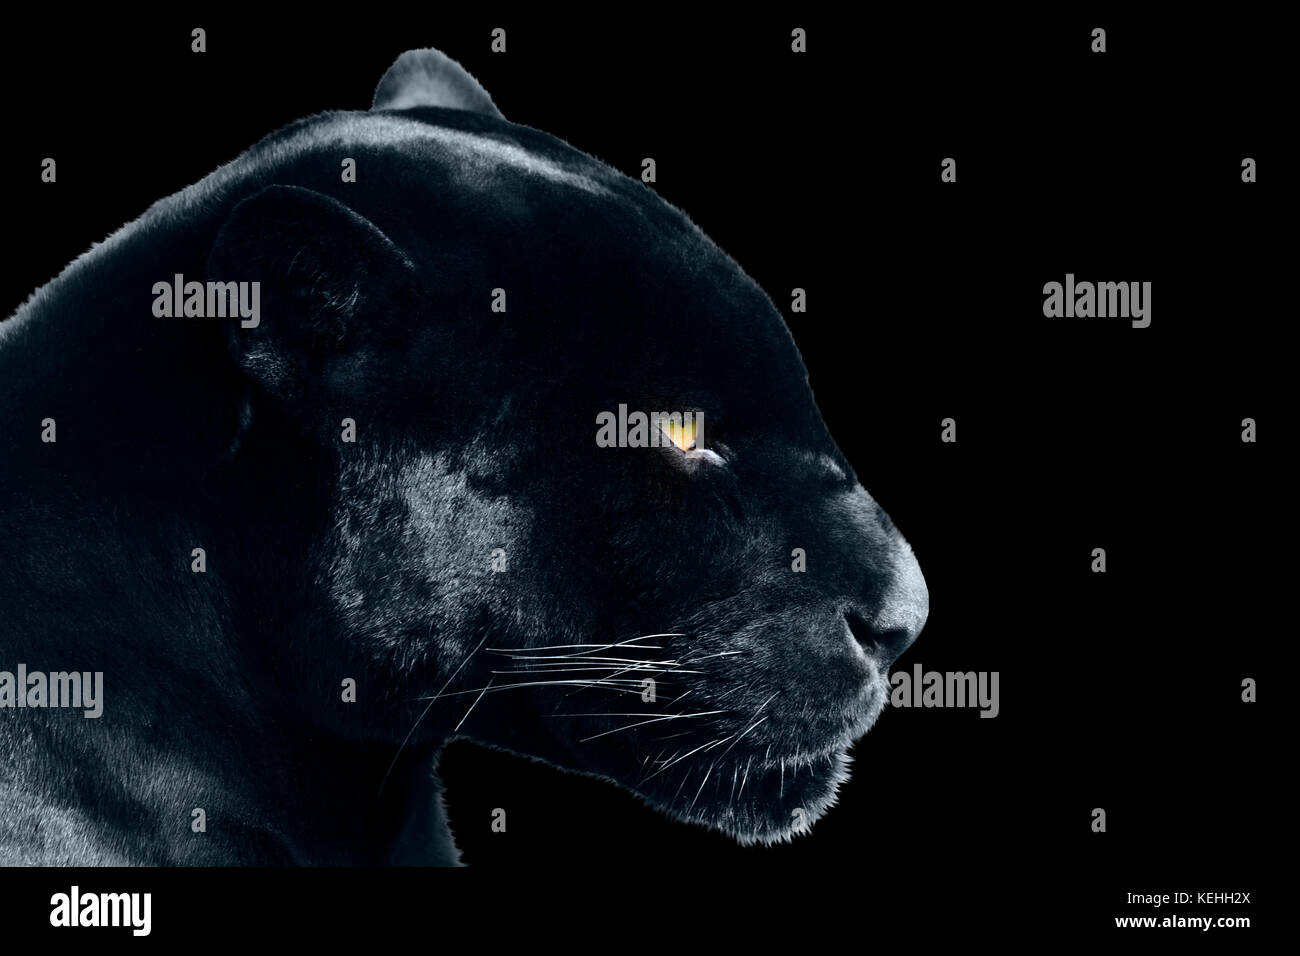 Black Jaguar Animal High Resolution Stock Photography And Images Alamy